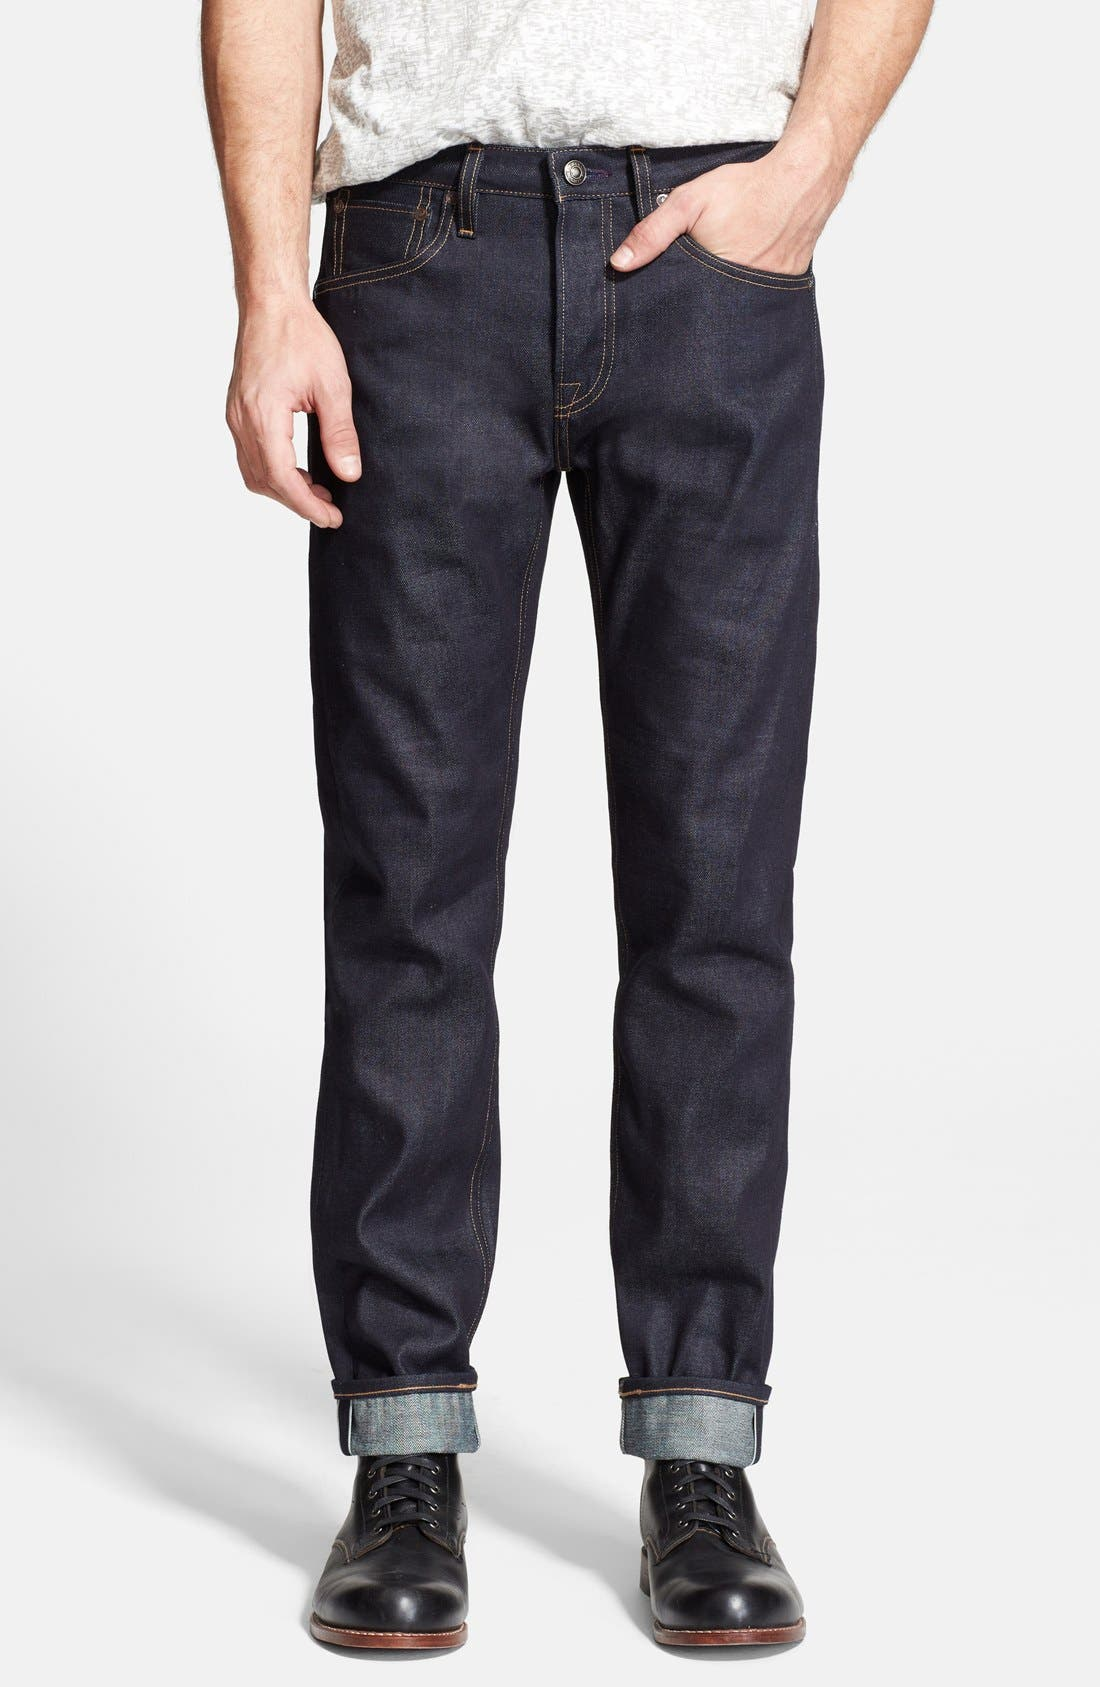 LEVI'S<SUP>®</SUP> MADE & CRAFTED<SUP>™</SUP> 'Tack' Slim Fit Jeans, Main, color, 400